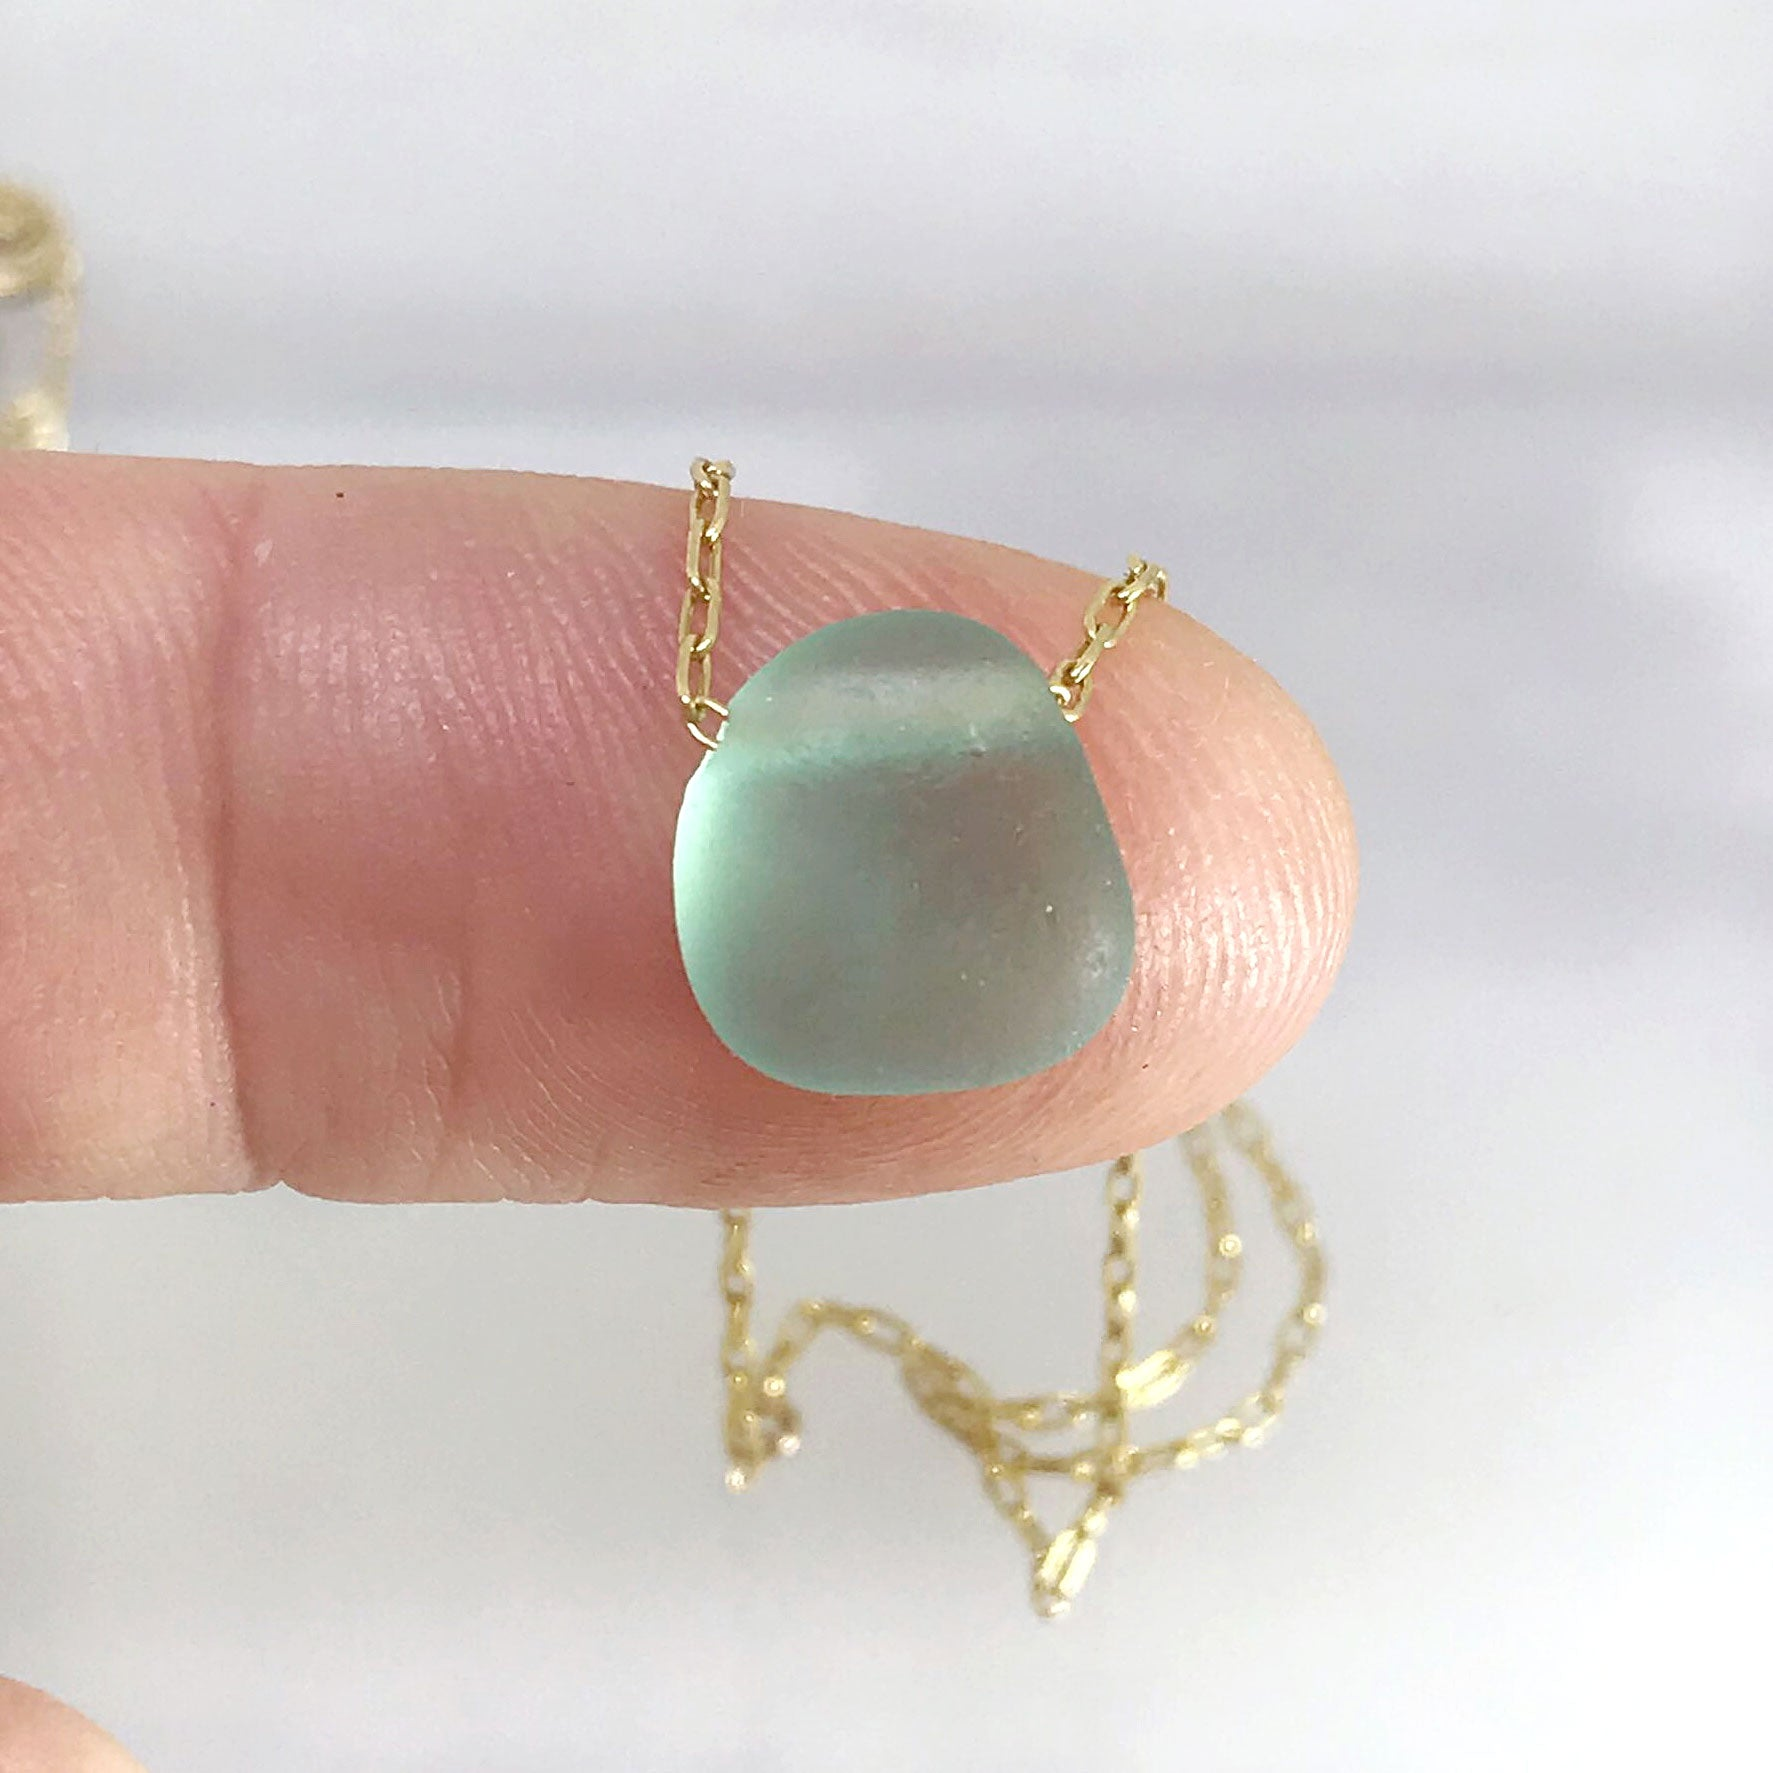 Aqua Seaglass Necklace on Short Gold chain - kriket-broadhurst seaglass jewellery made in Sydney